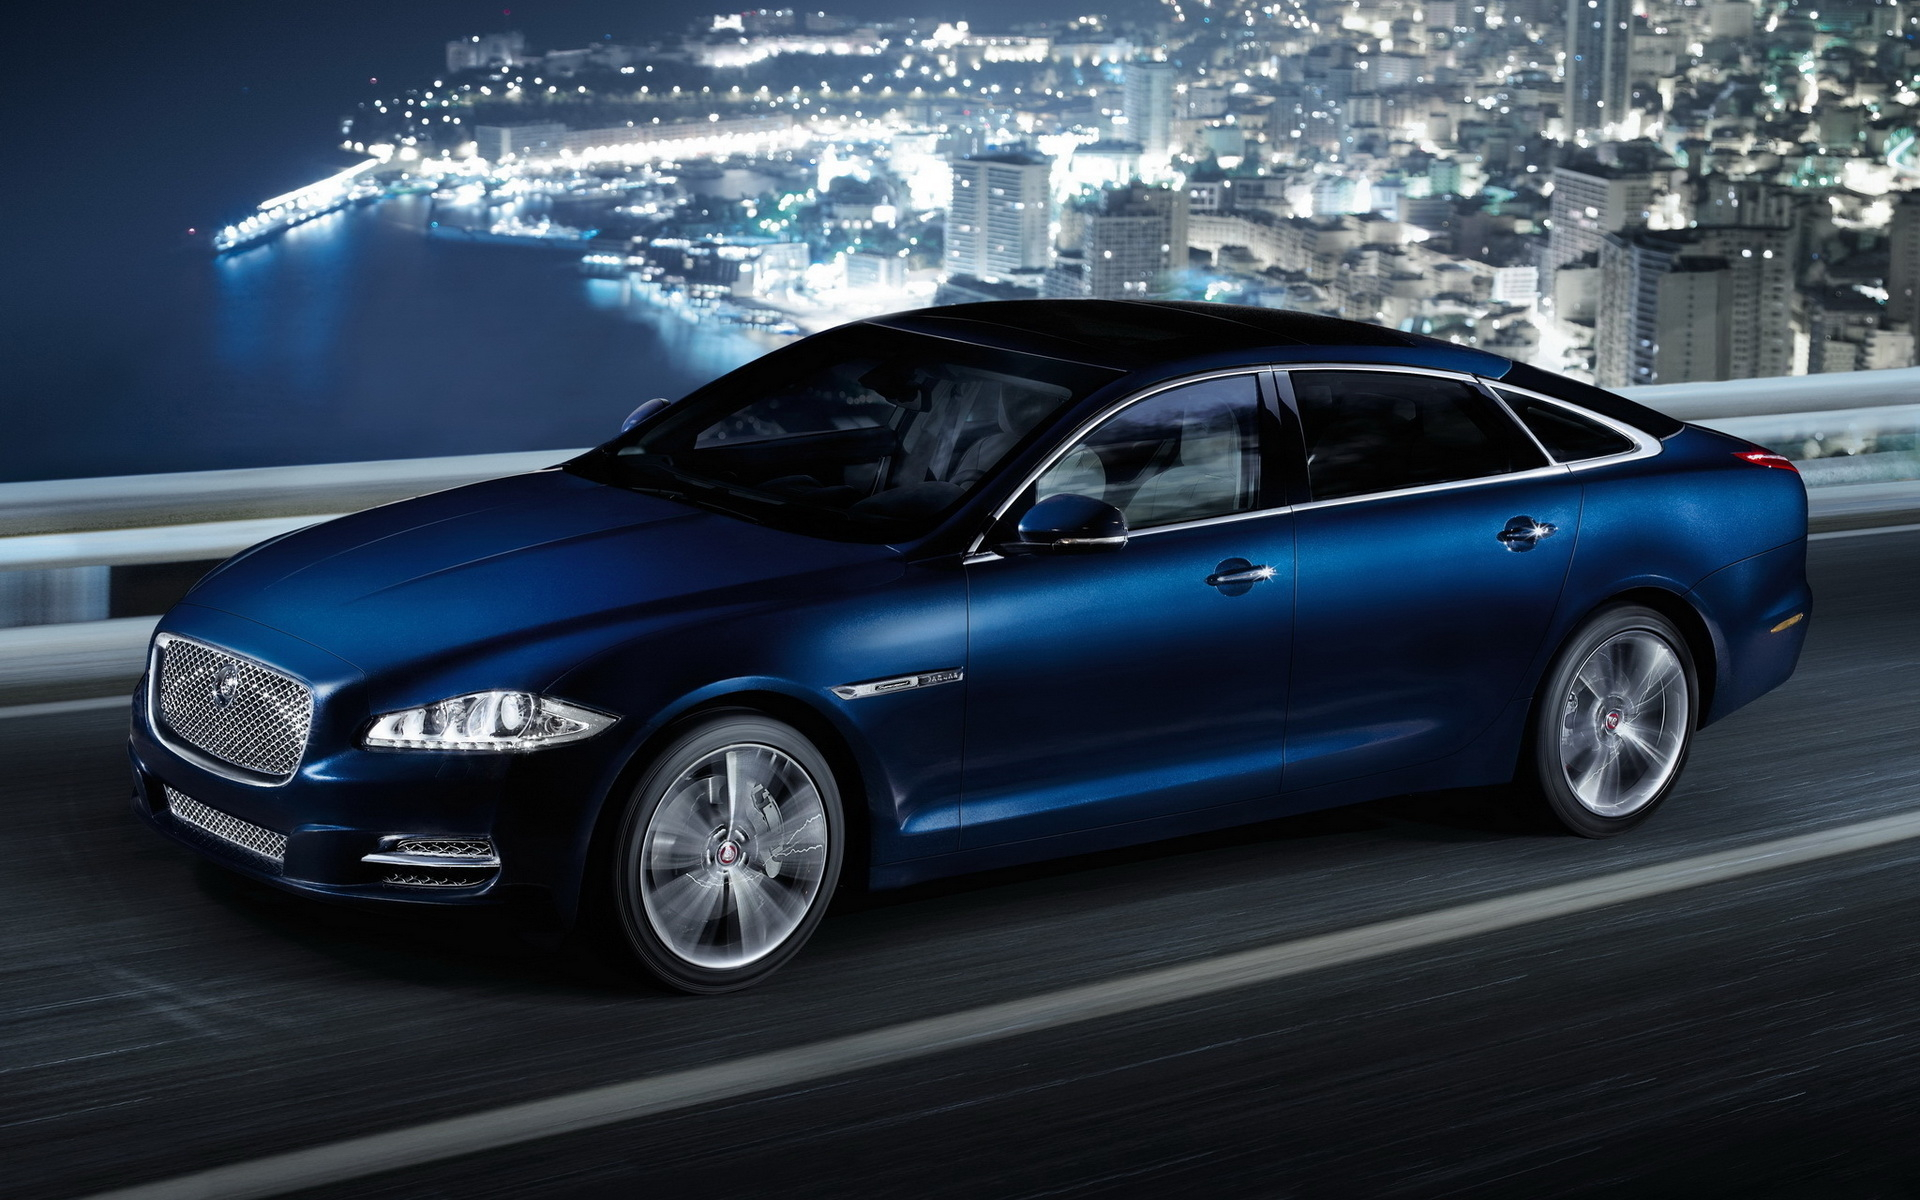 Blue Jaguar Car Wallpaper 8130 1920 x 1200 1920x1200